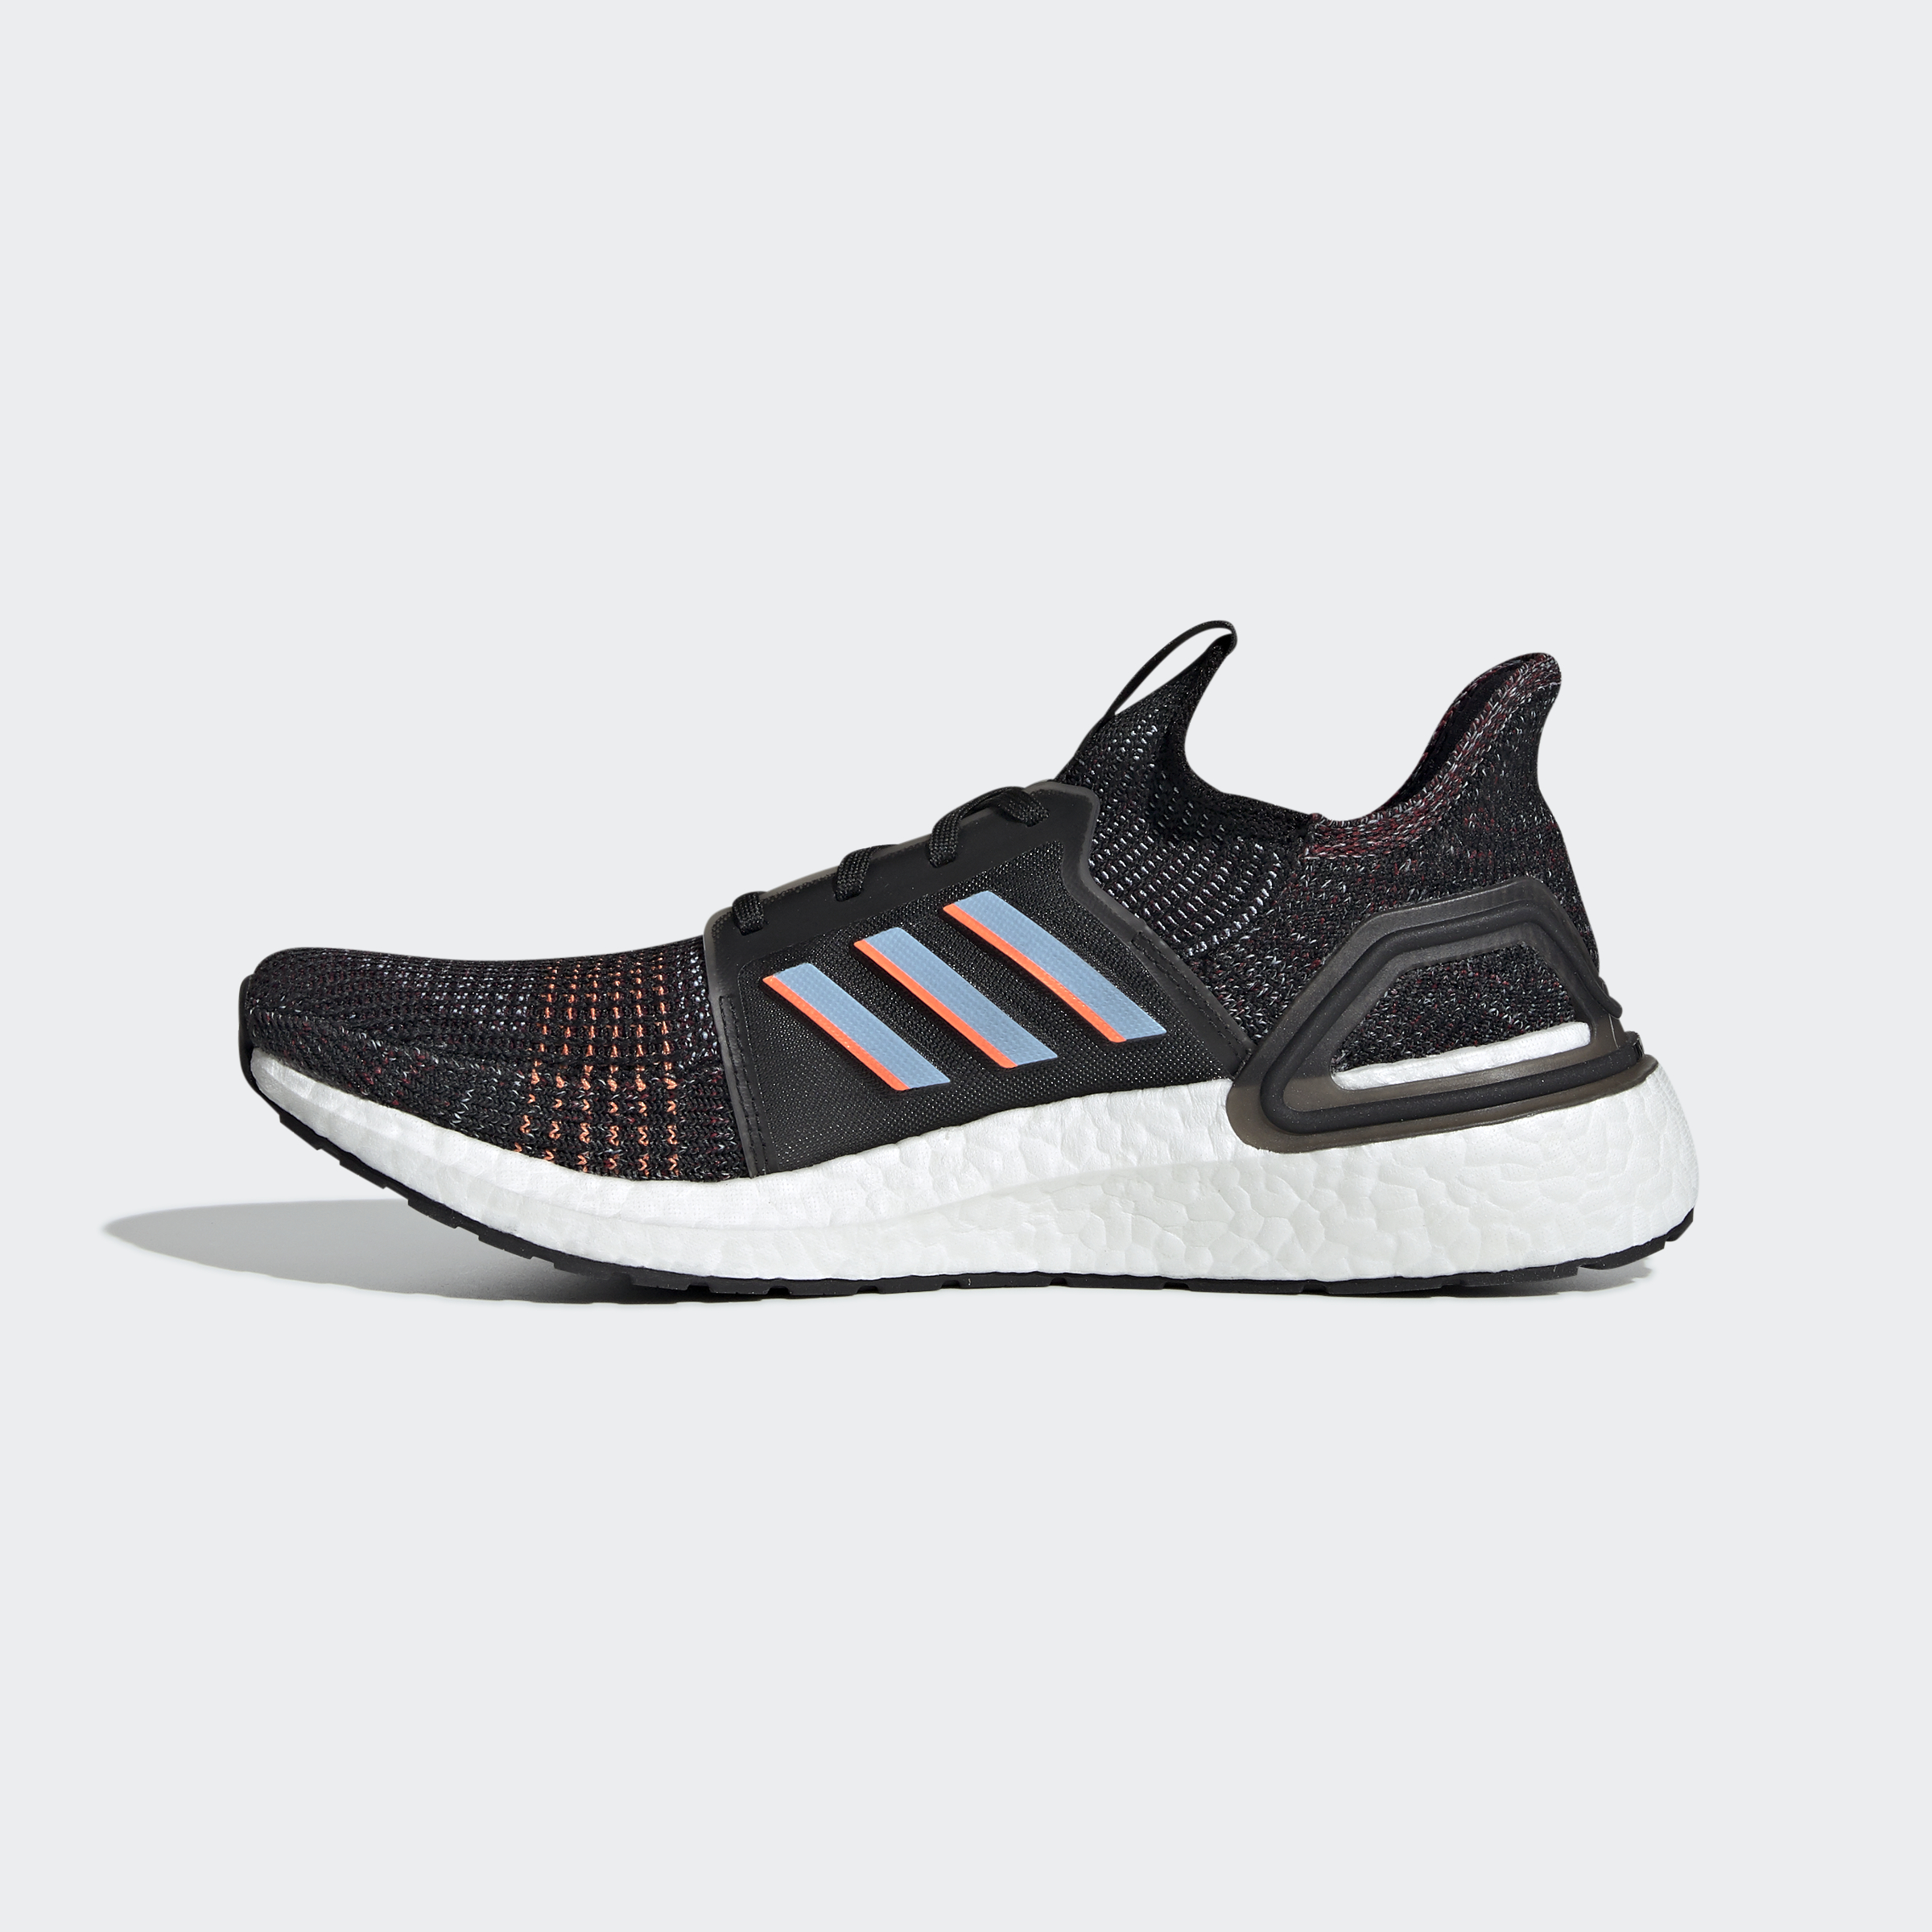 adidas-Ultraboost-19-Shoes-Athletic-amp-Sneakers thumbnail 130